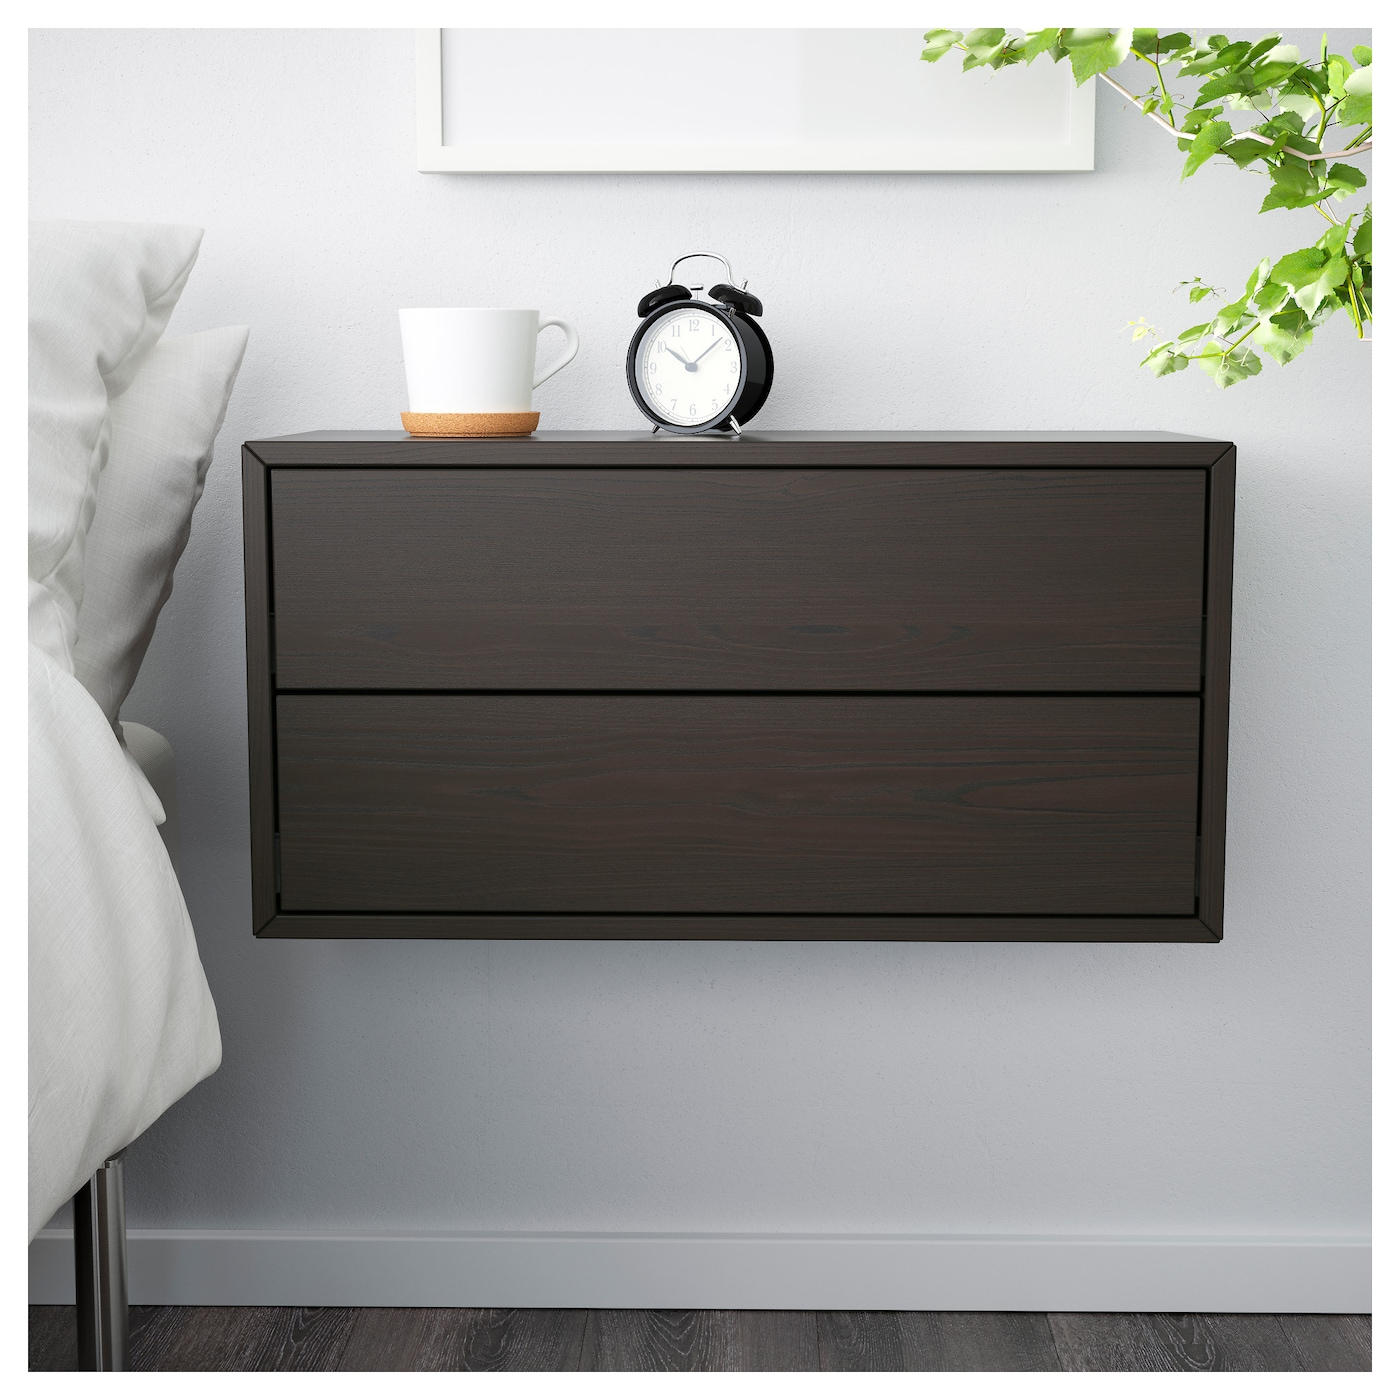 recommended wall cabinets with drawers